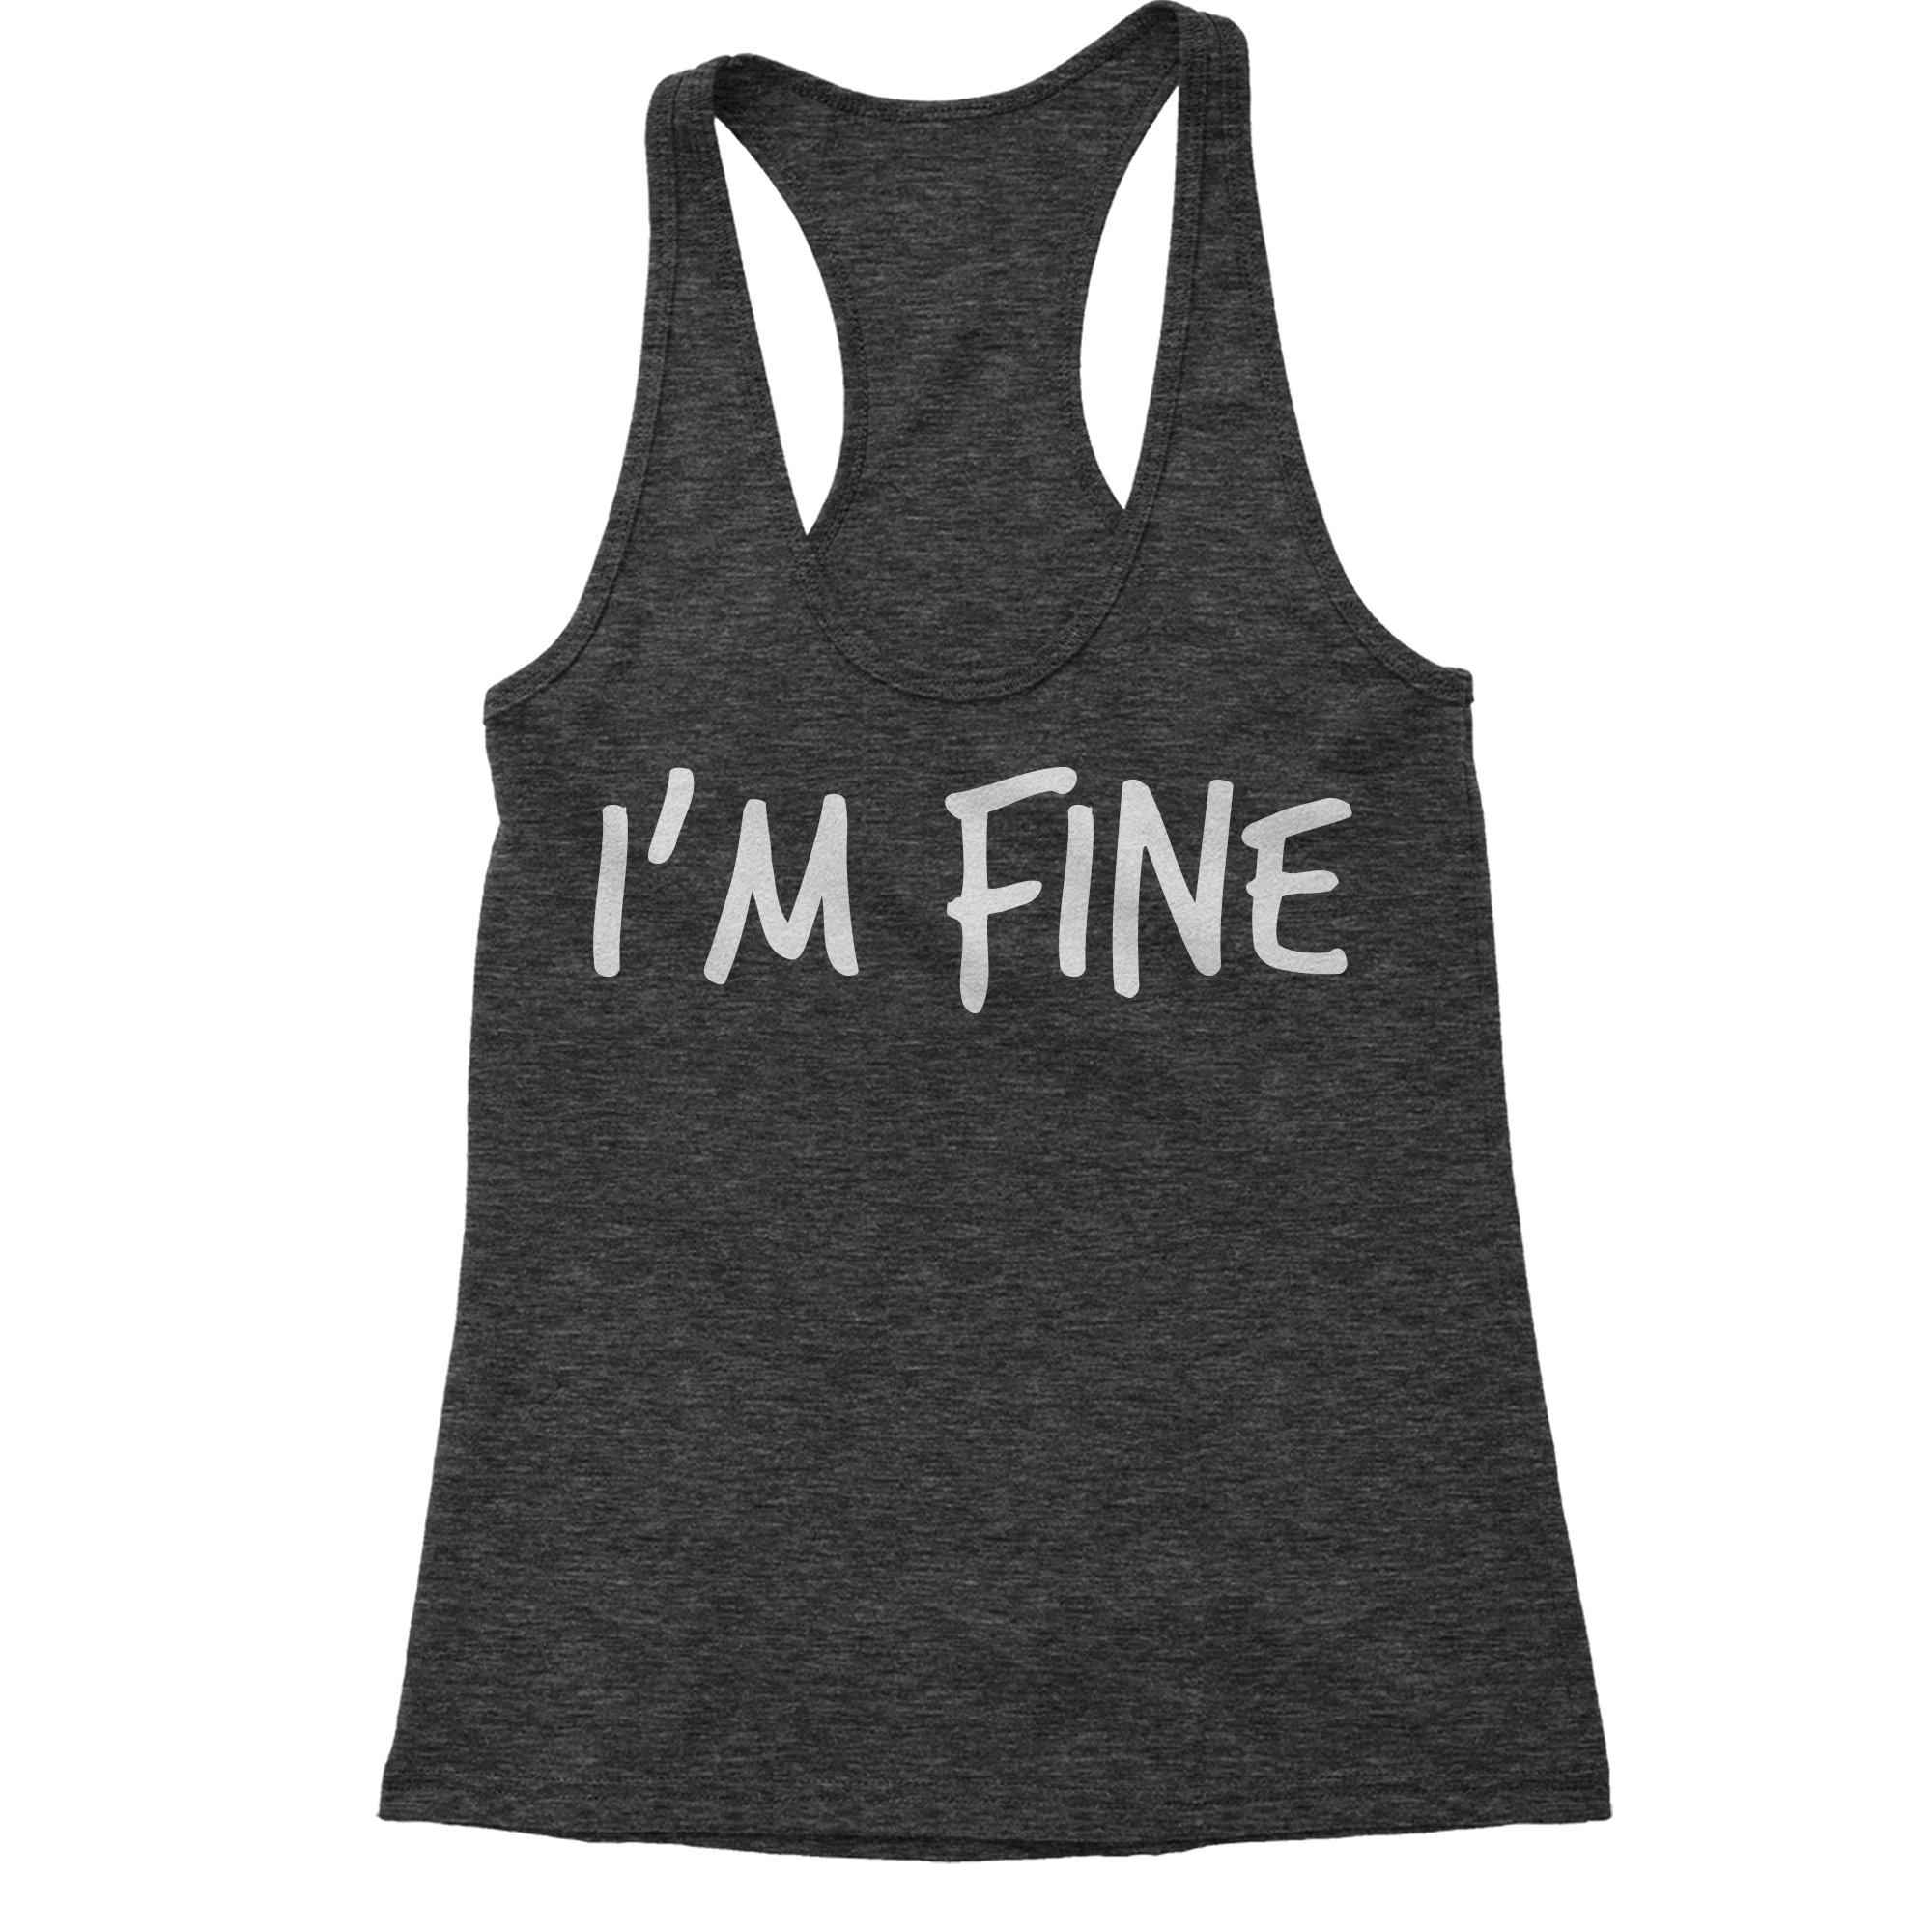 Expression Tees Racerback I'm Fine Small Charcoal Grey Ladies Tank Top